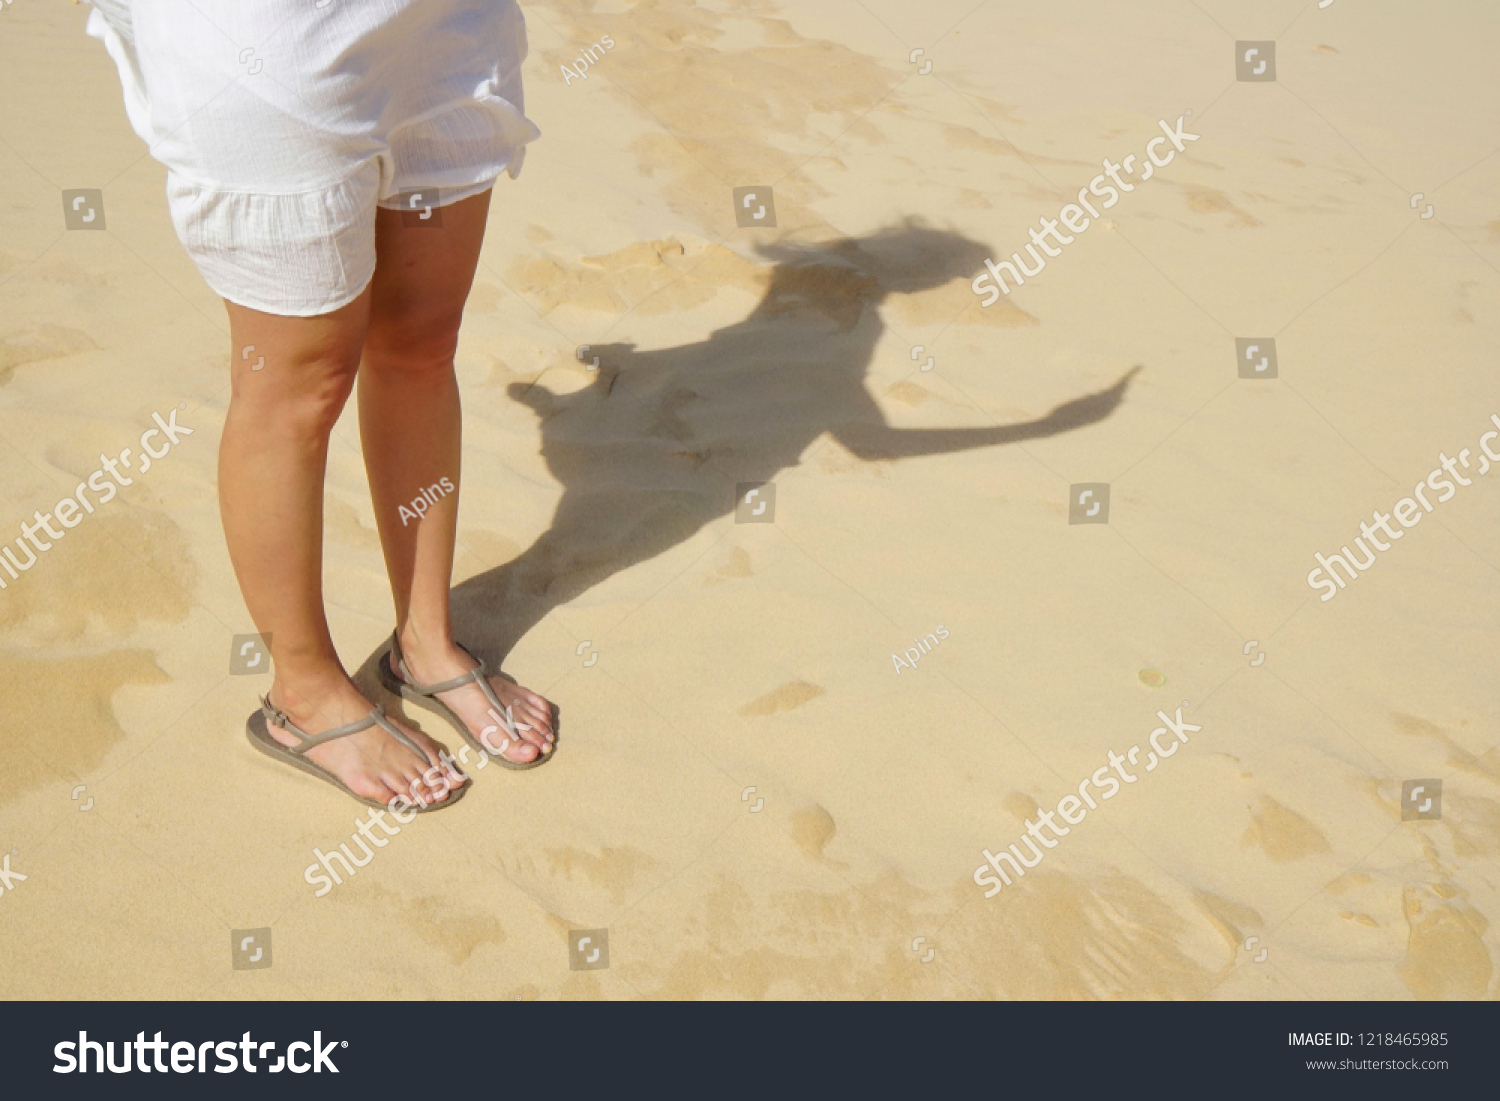 7d74cff4e woman s leg wearing white dress and sandal standing on desert reflect  shadow in selfie photo acting